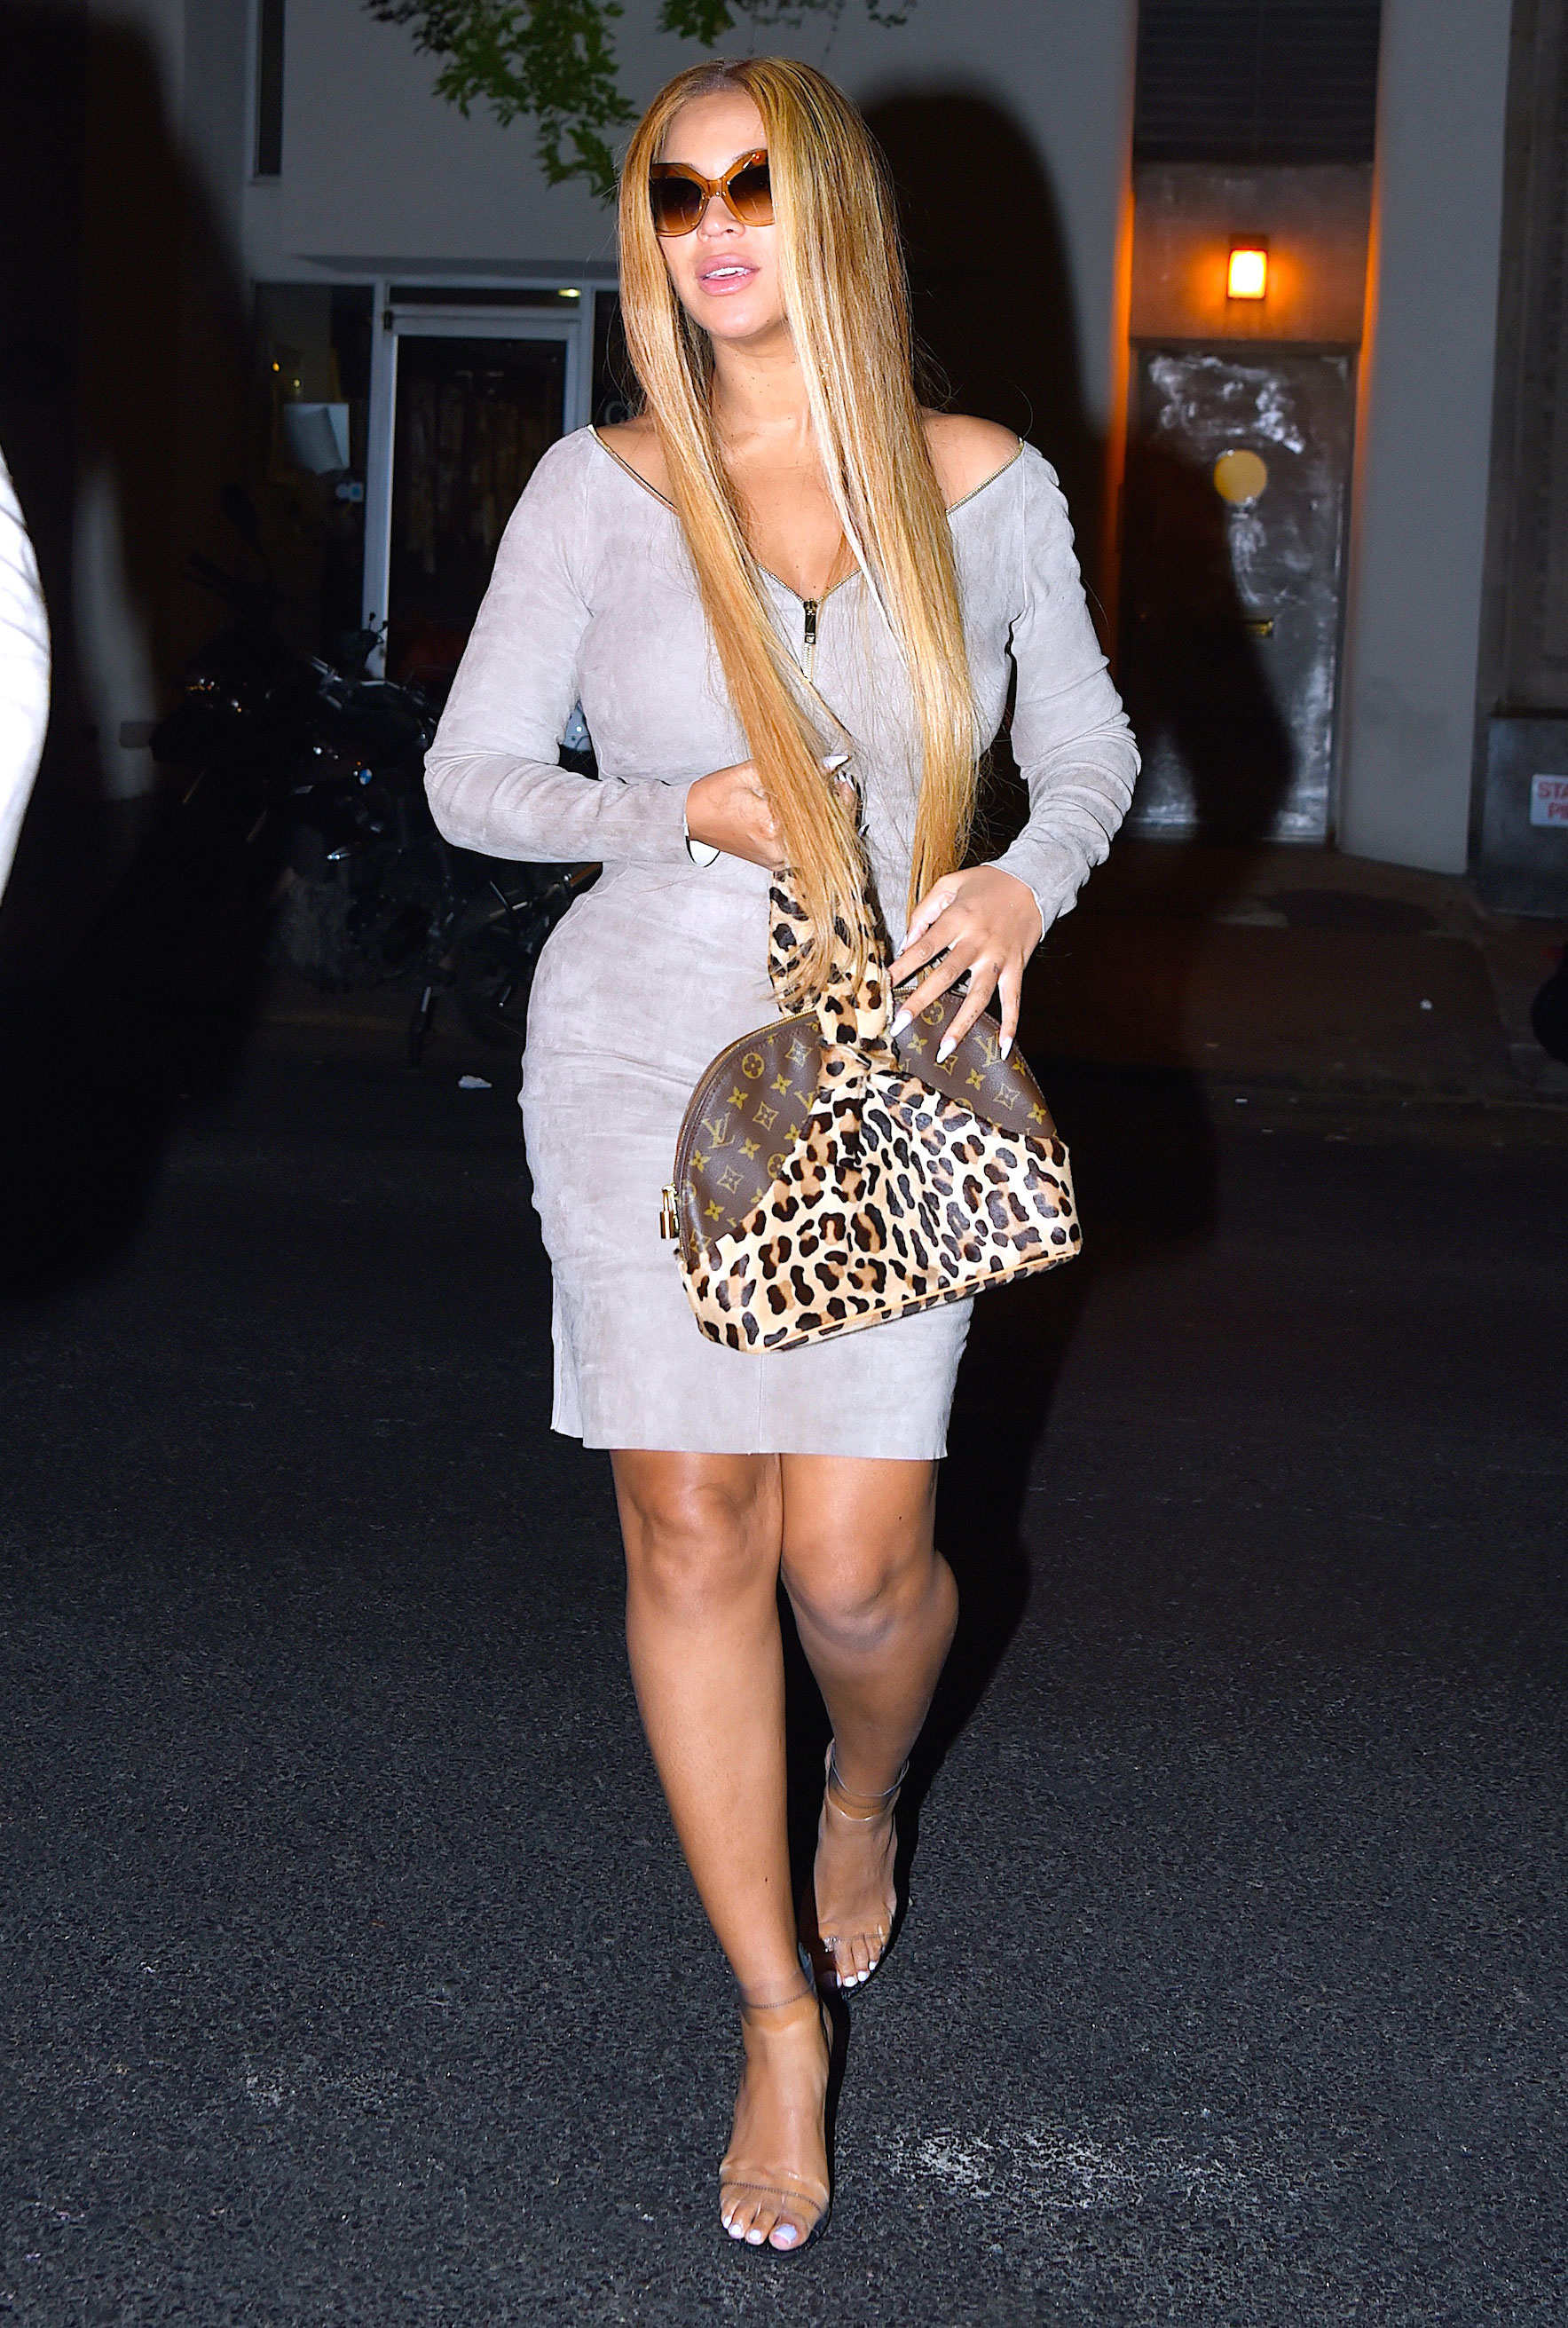 Beyonce Goes For Super Long Hair Via Extensions